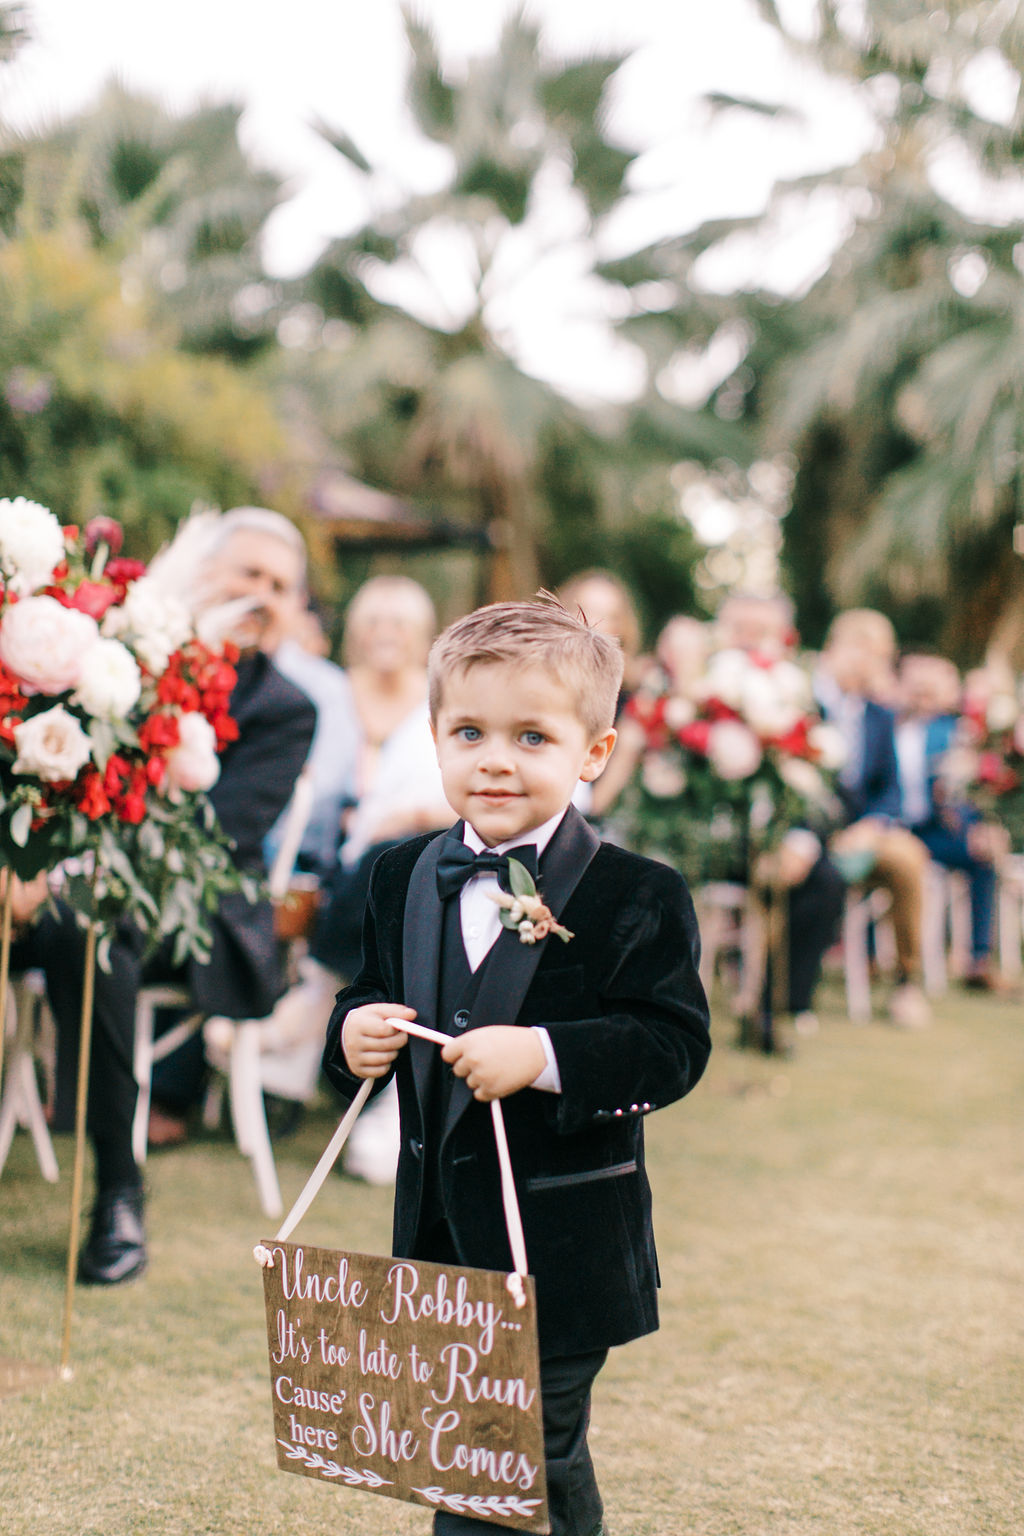 meagan robert wedding ring bearer holding sign